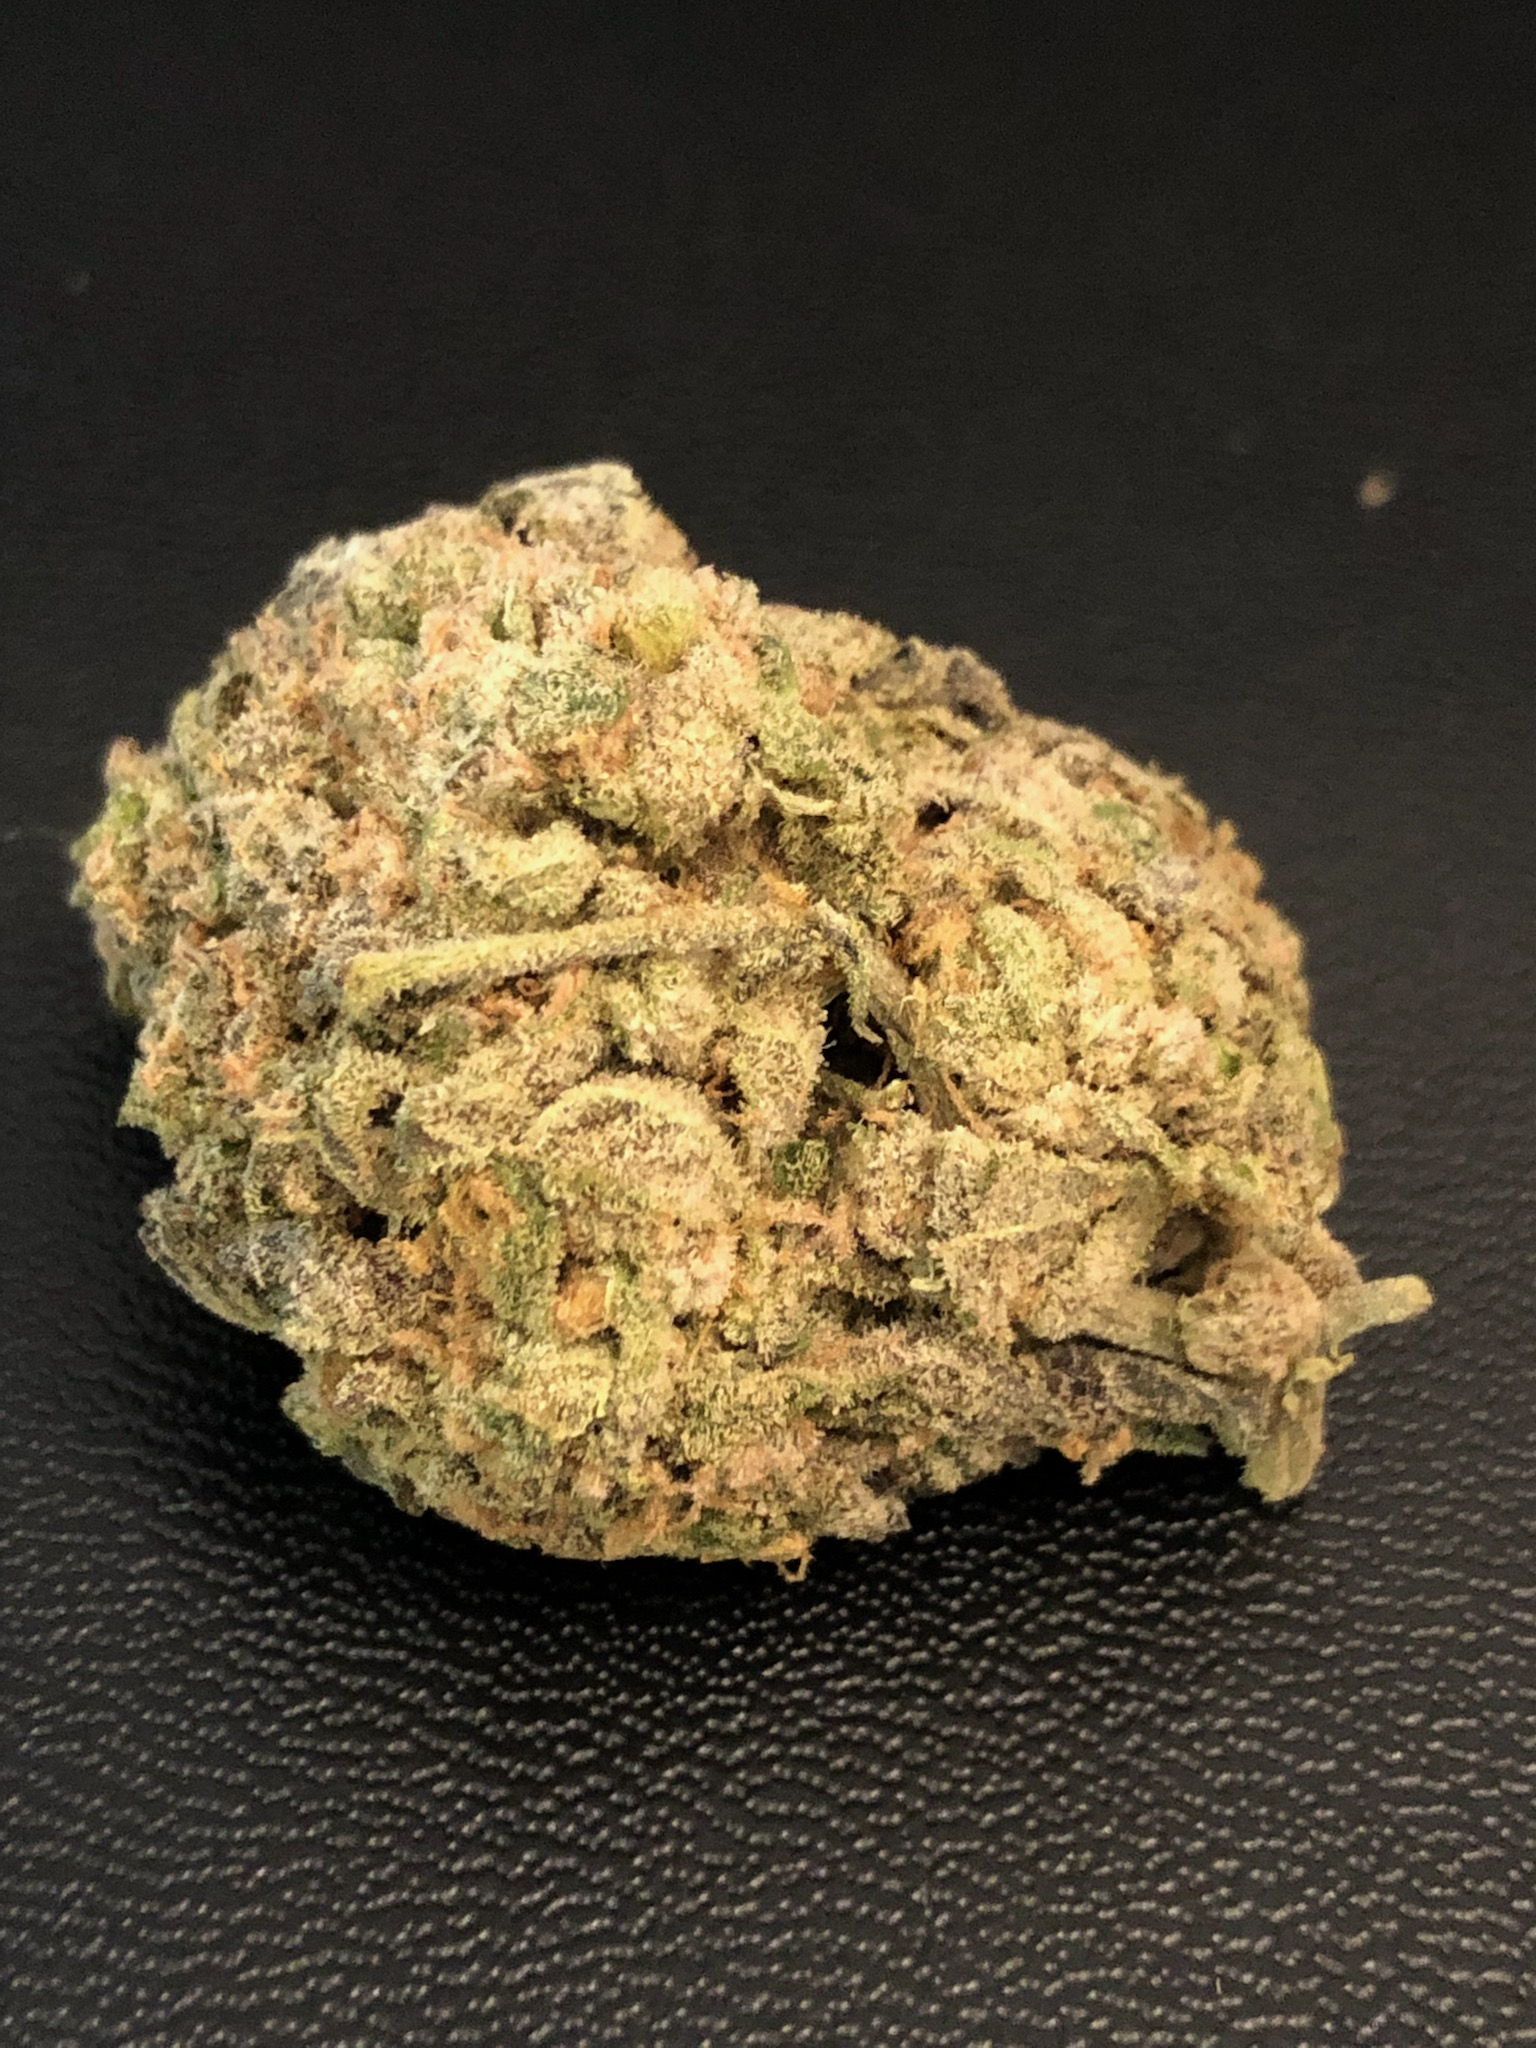 New! GELATO up to 20% THC - Special $160oz!